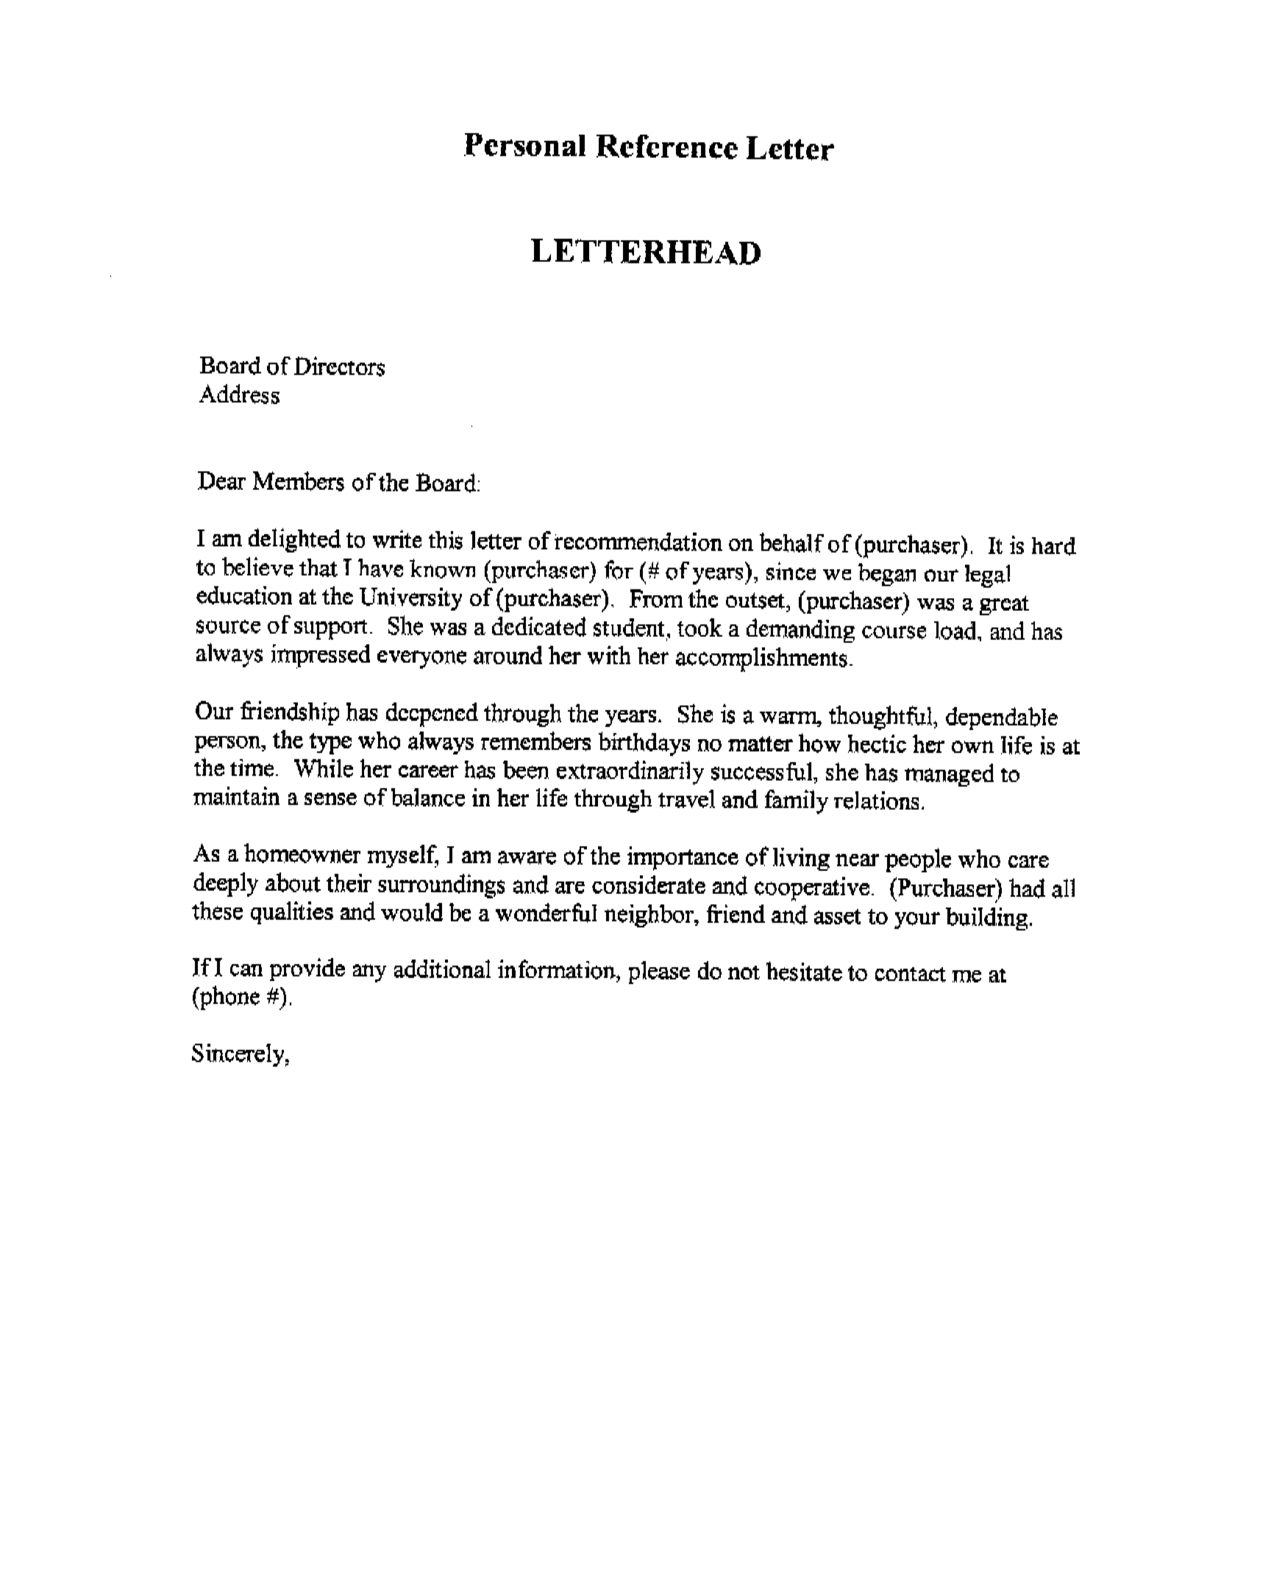 Professional Recommendation Letter   This Is An Example Of A Professional  Recommendation Written For An Employee Regard To Personal Reference Letter For A Job